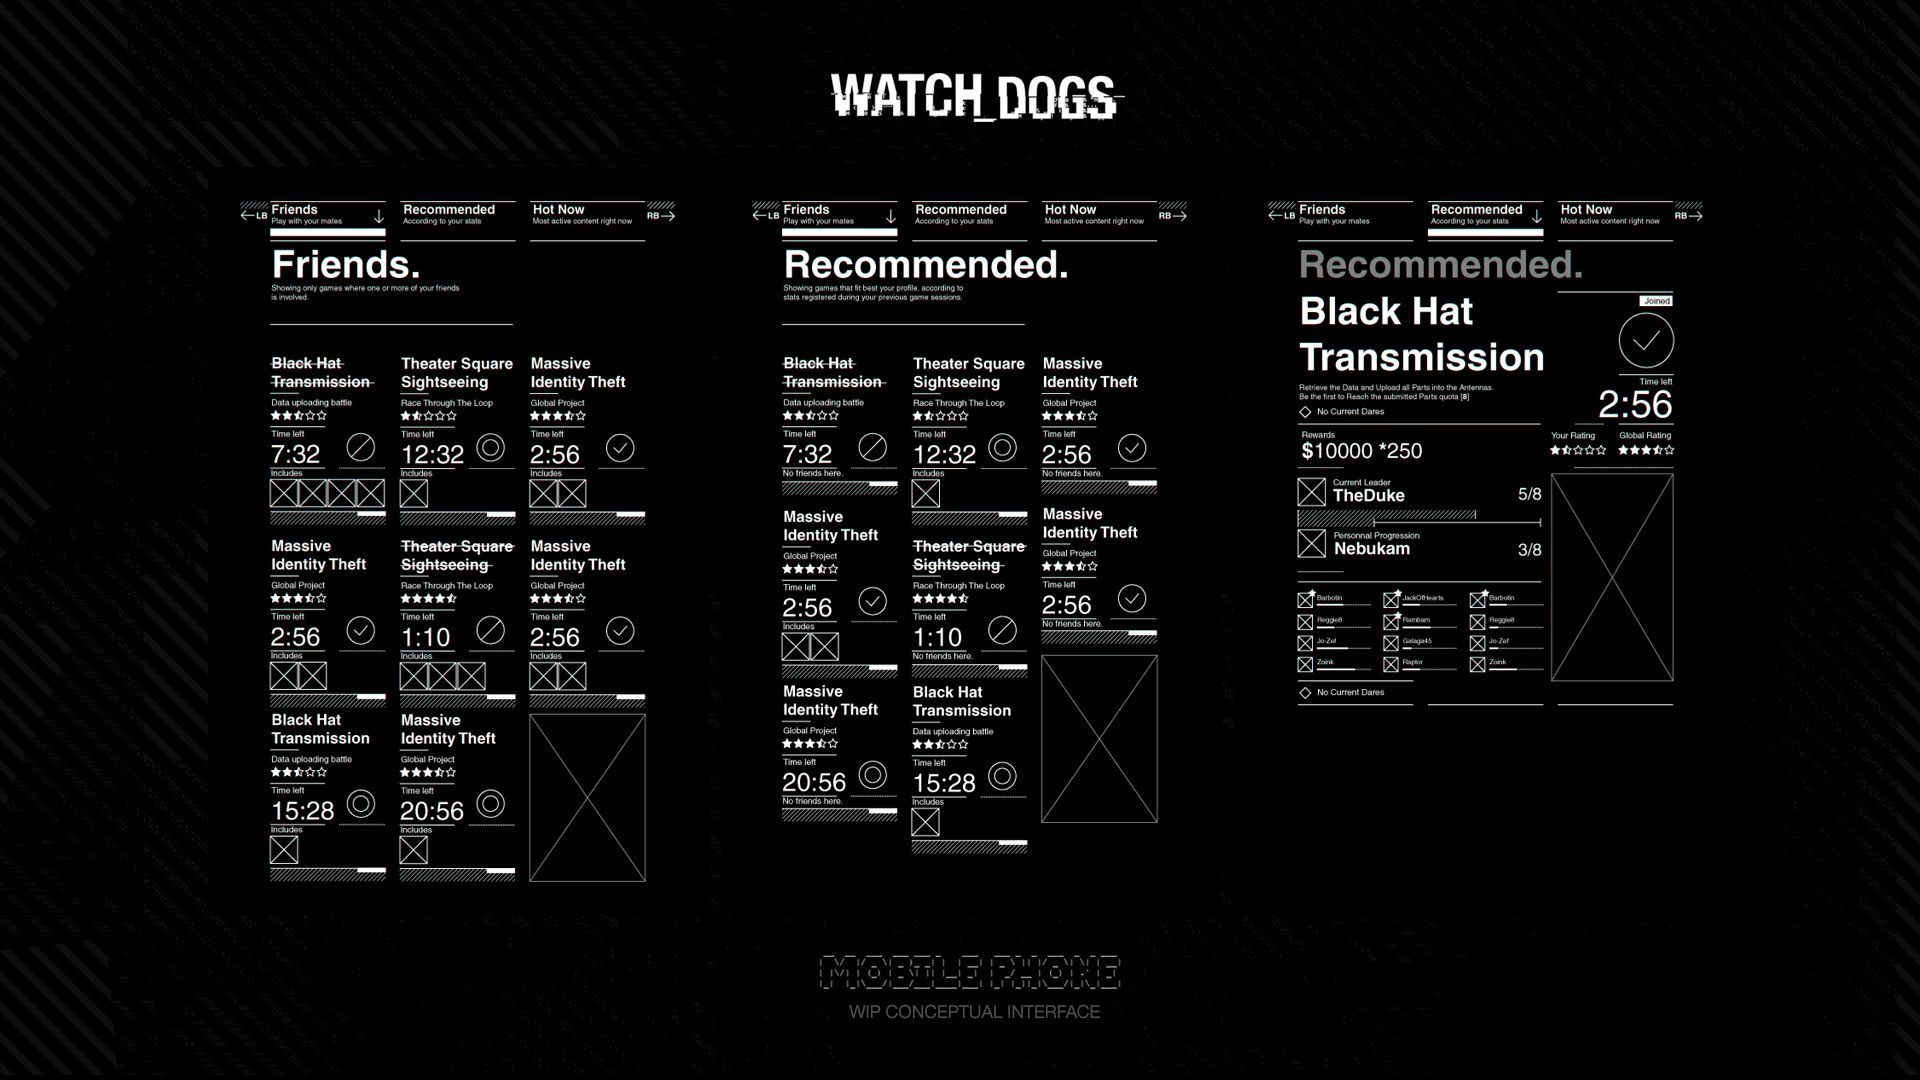 Watch Dogs Can You Take Pictures